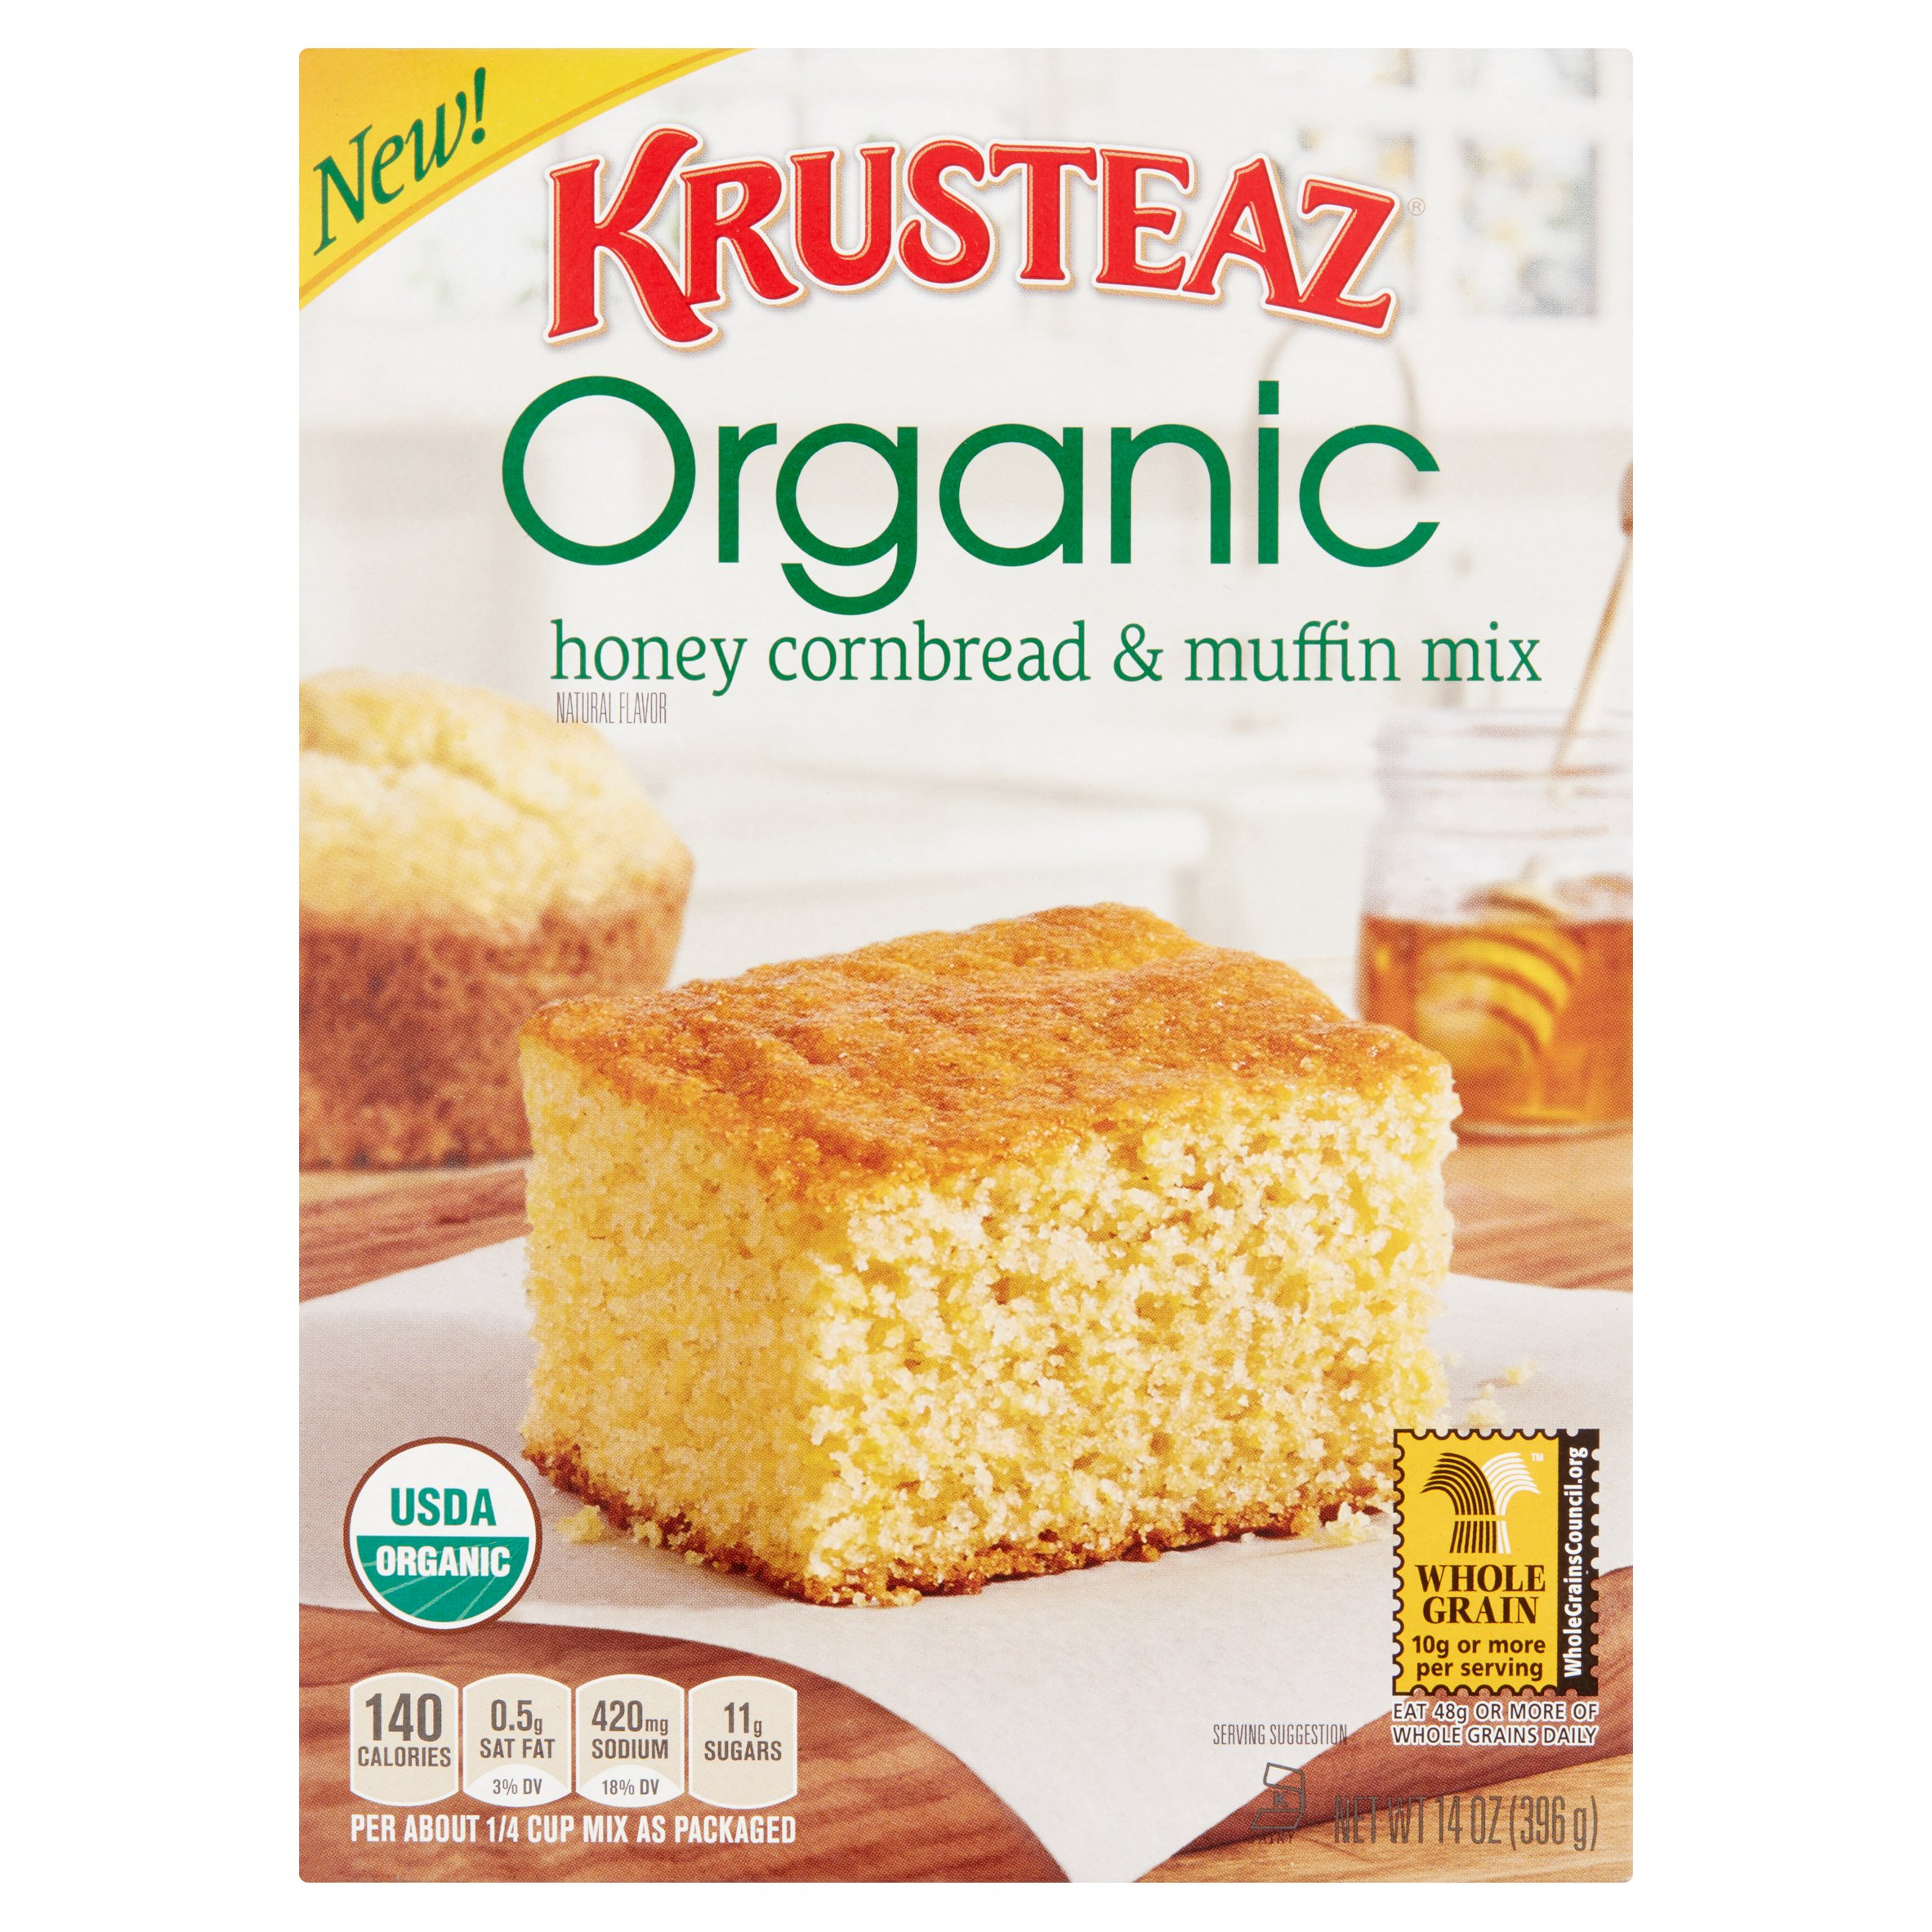 Krusteaz Organic Honey Cornbread & Muffin Mix 14 oz. Box by Continental Mills